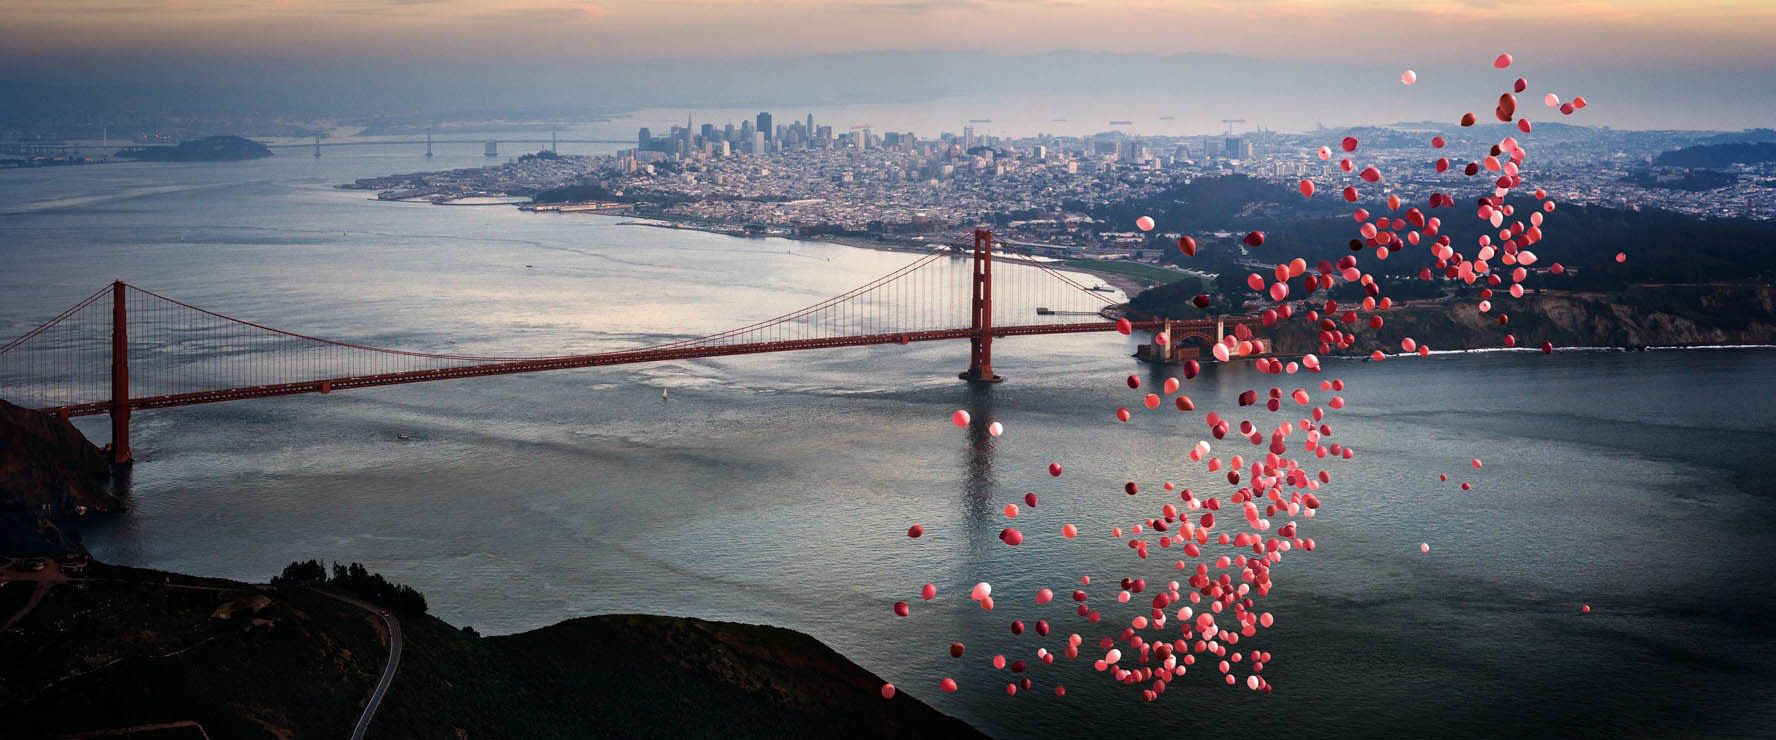 BALLOONS OVER SAN FRANCISCO, Archival Pigment Print